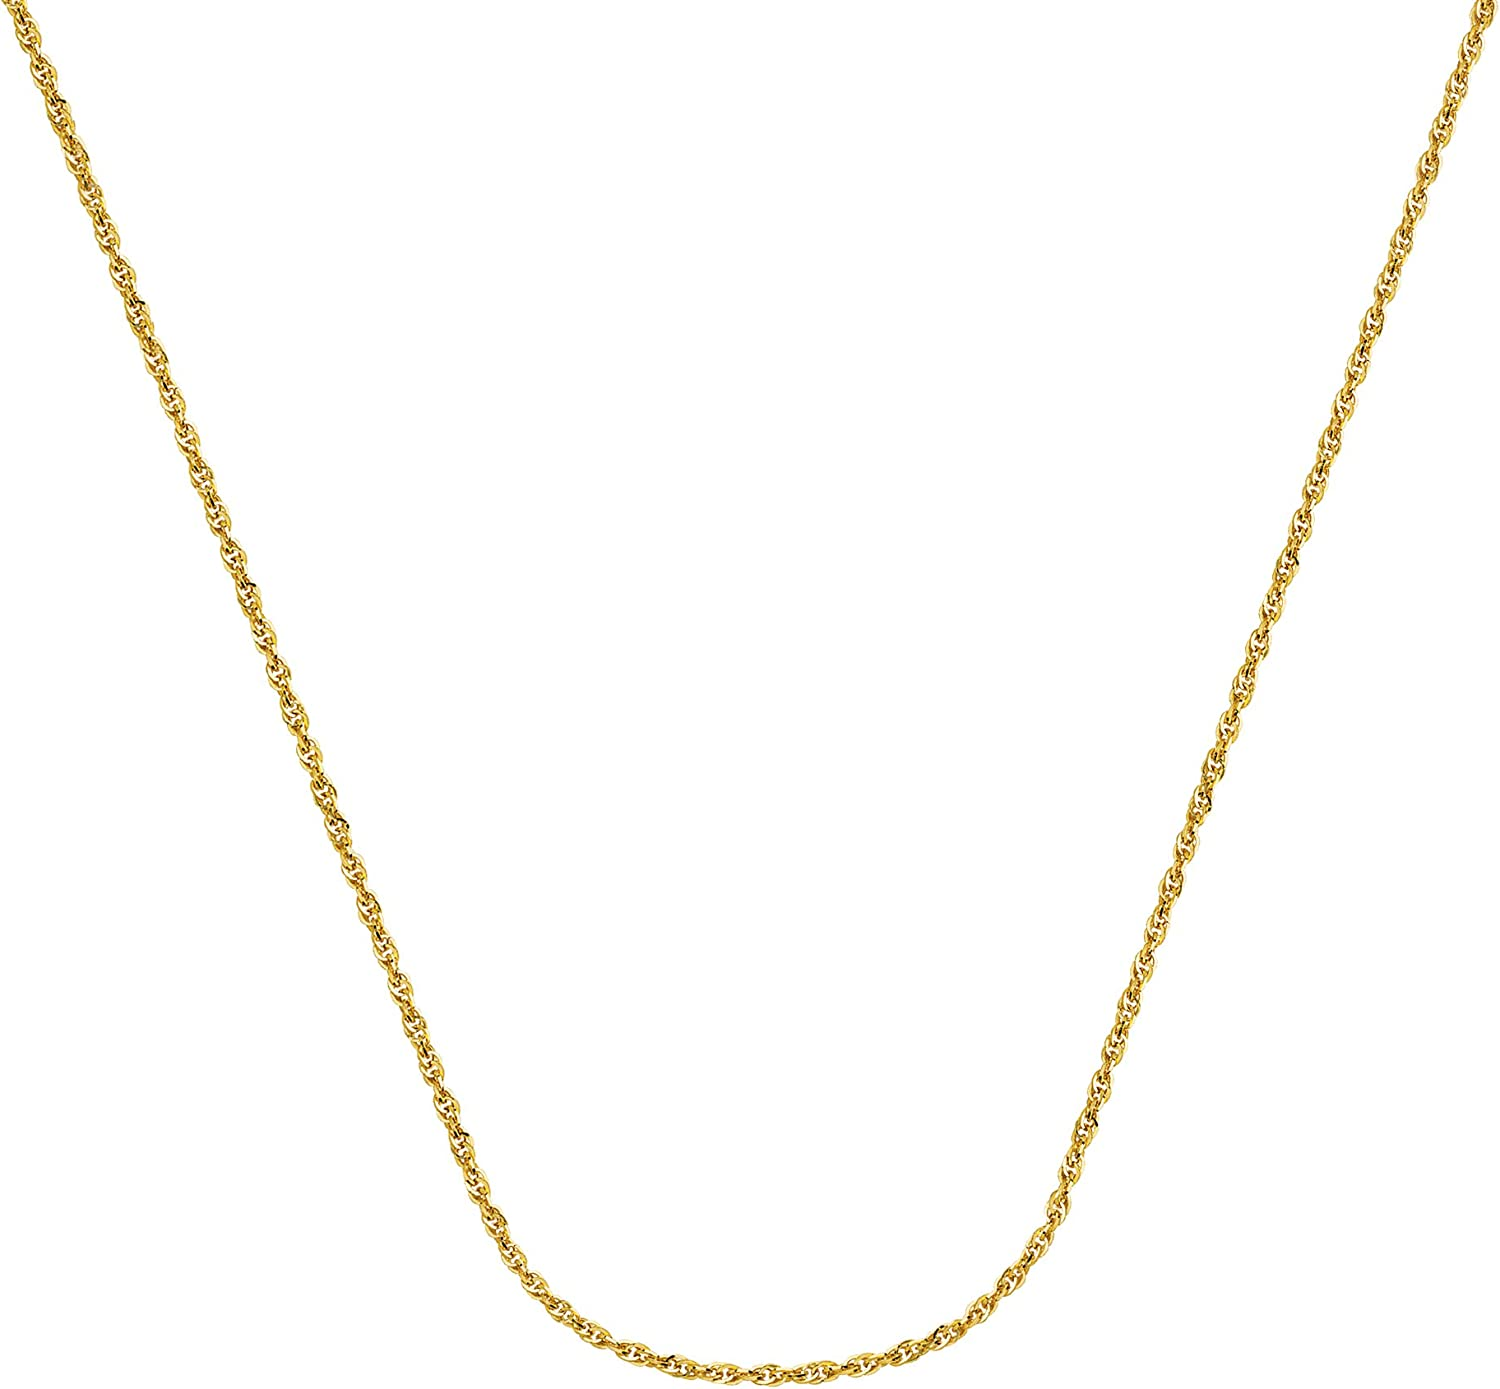 18 INCHES LONG 14KT GOLD ROPE CHAIN WITH LOBSTER LOCK ROPE CHAIN